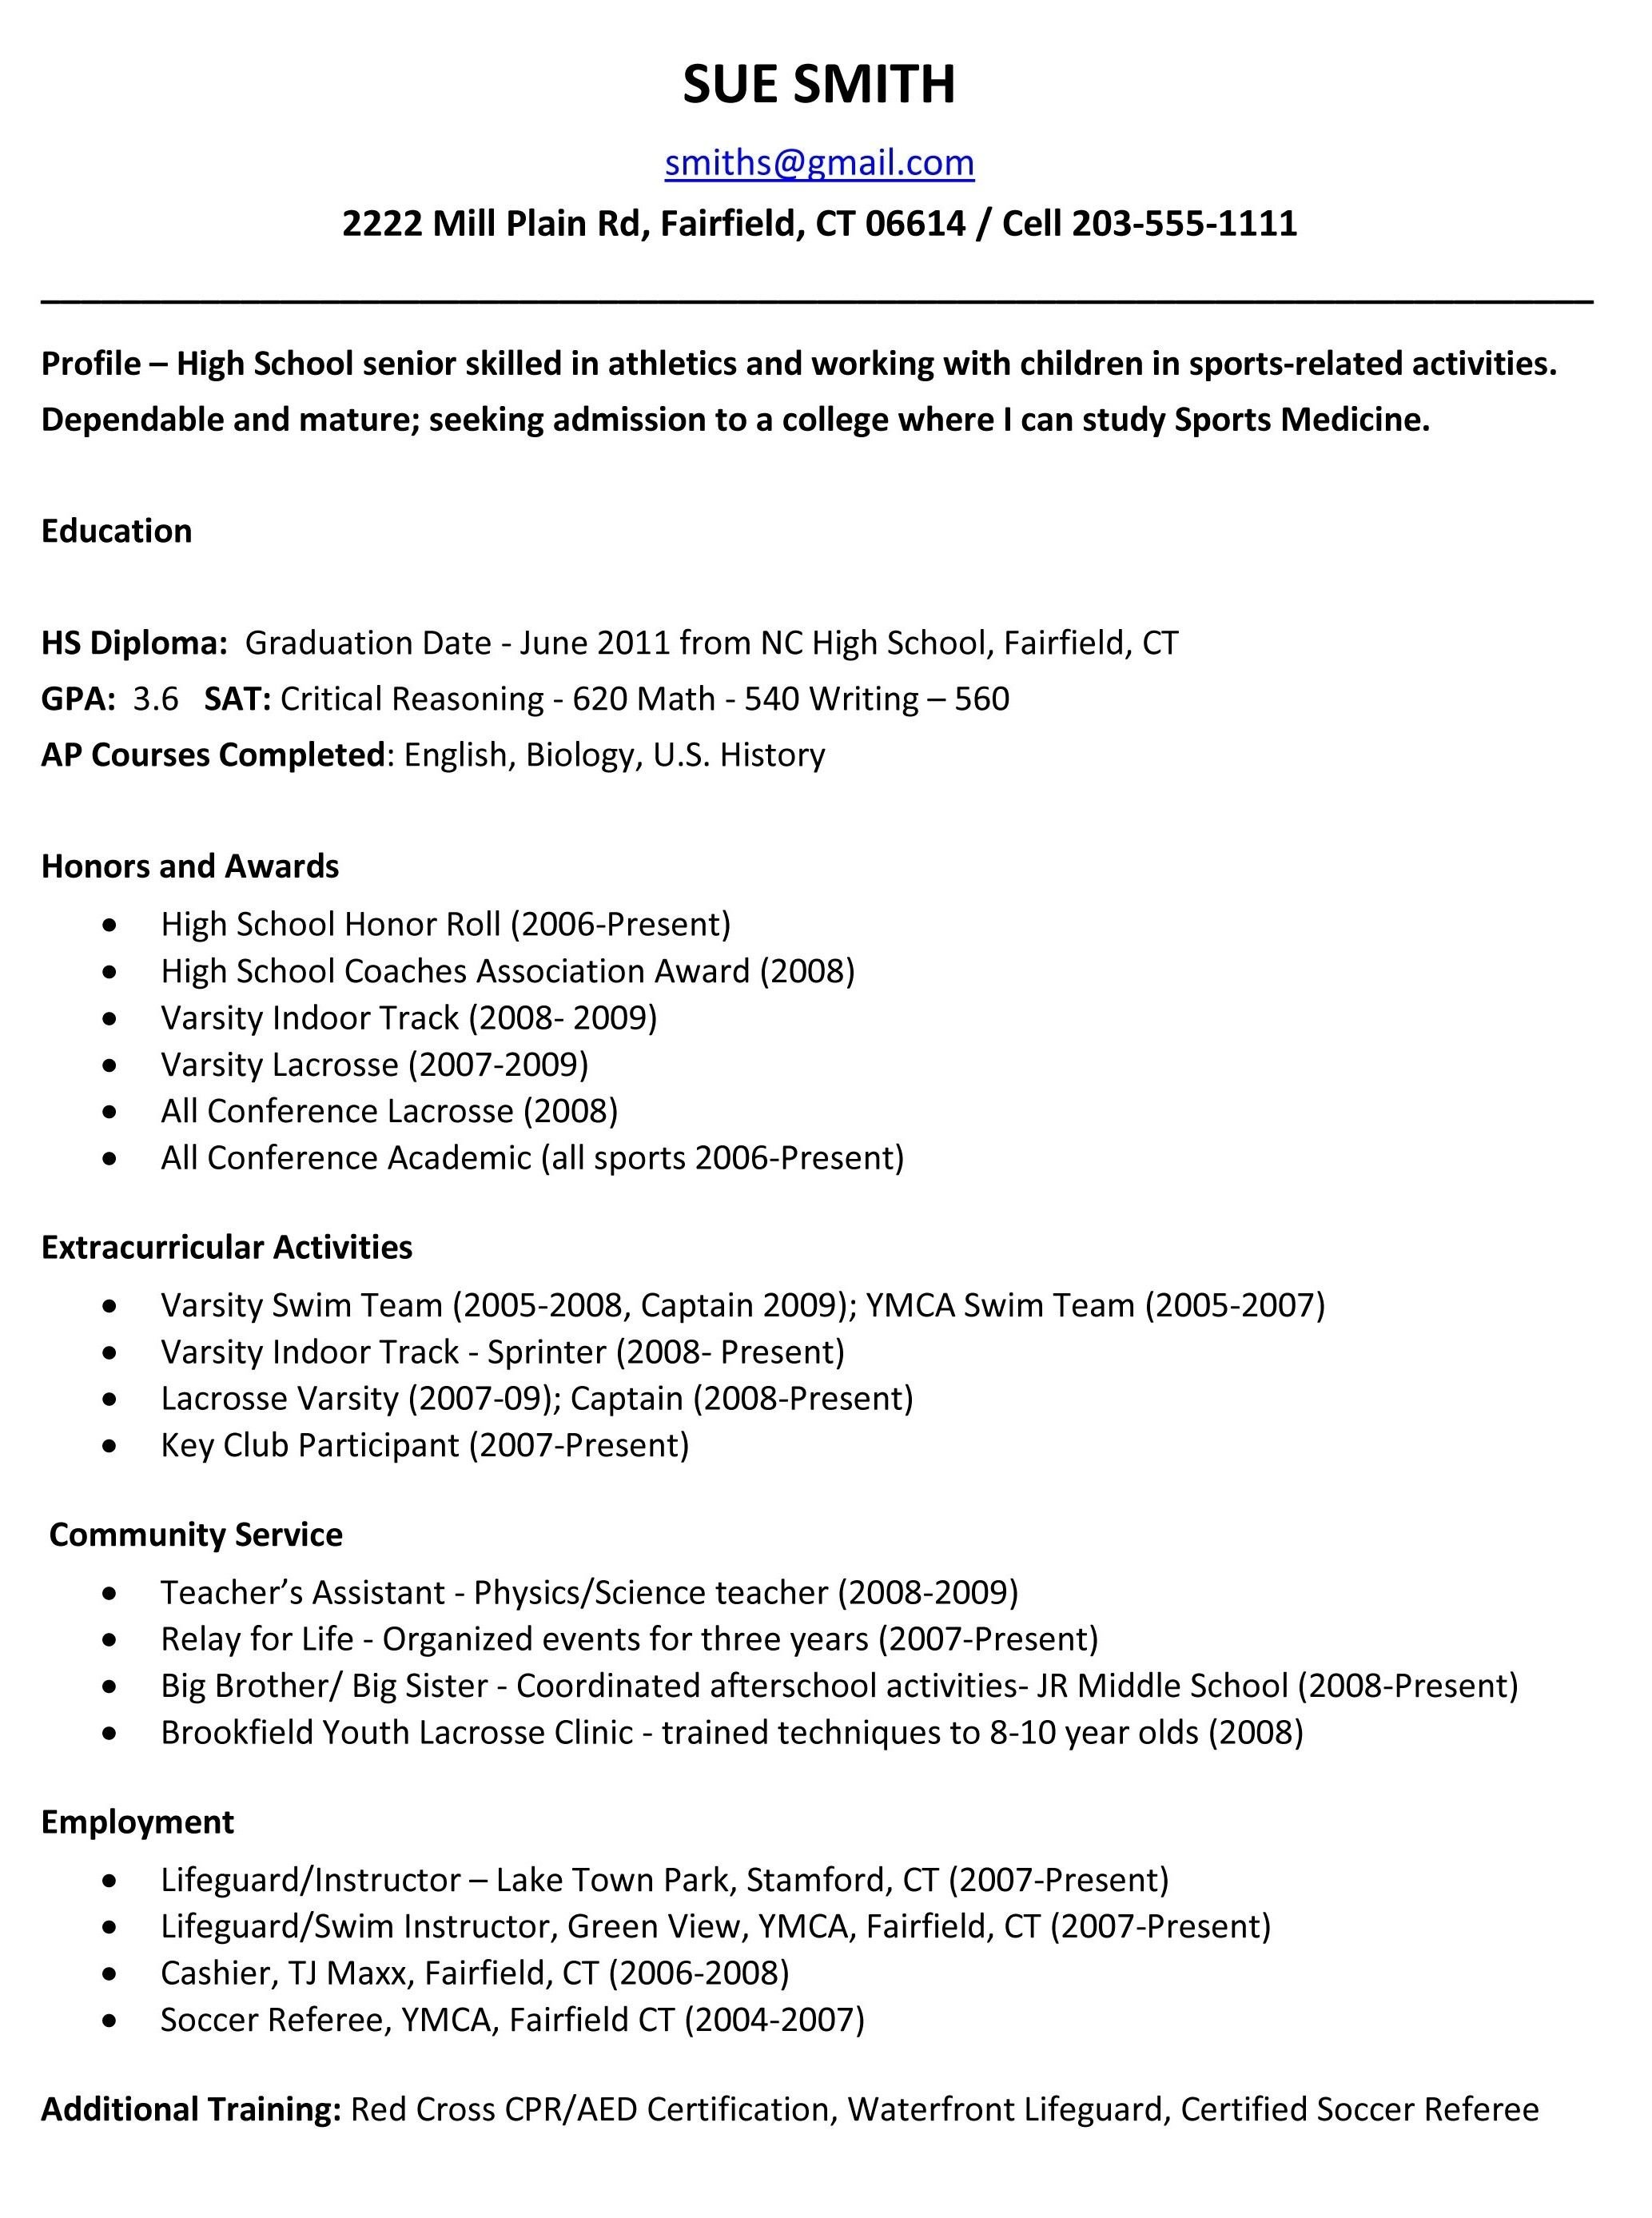 10 Stylish Community Service Ideas For Highschool Students example resume for high school students for college applications 2020